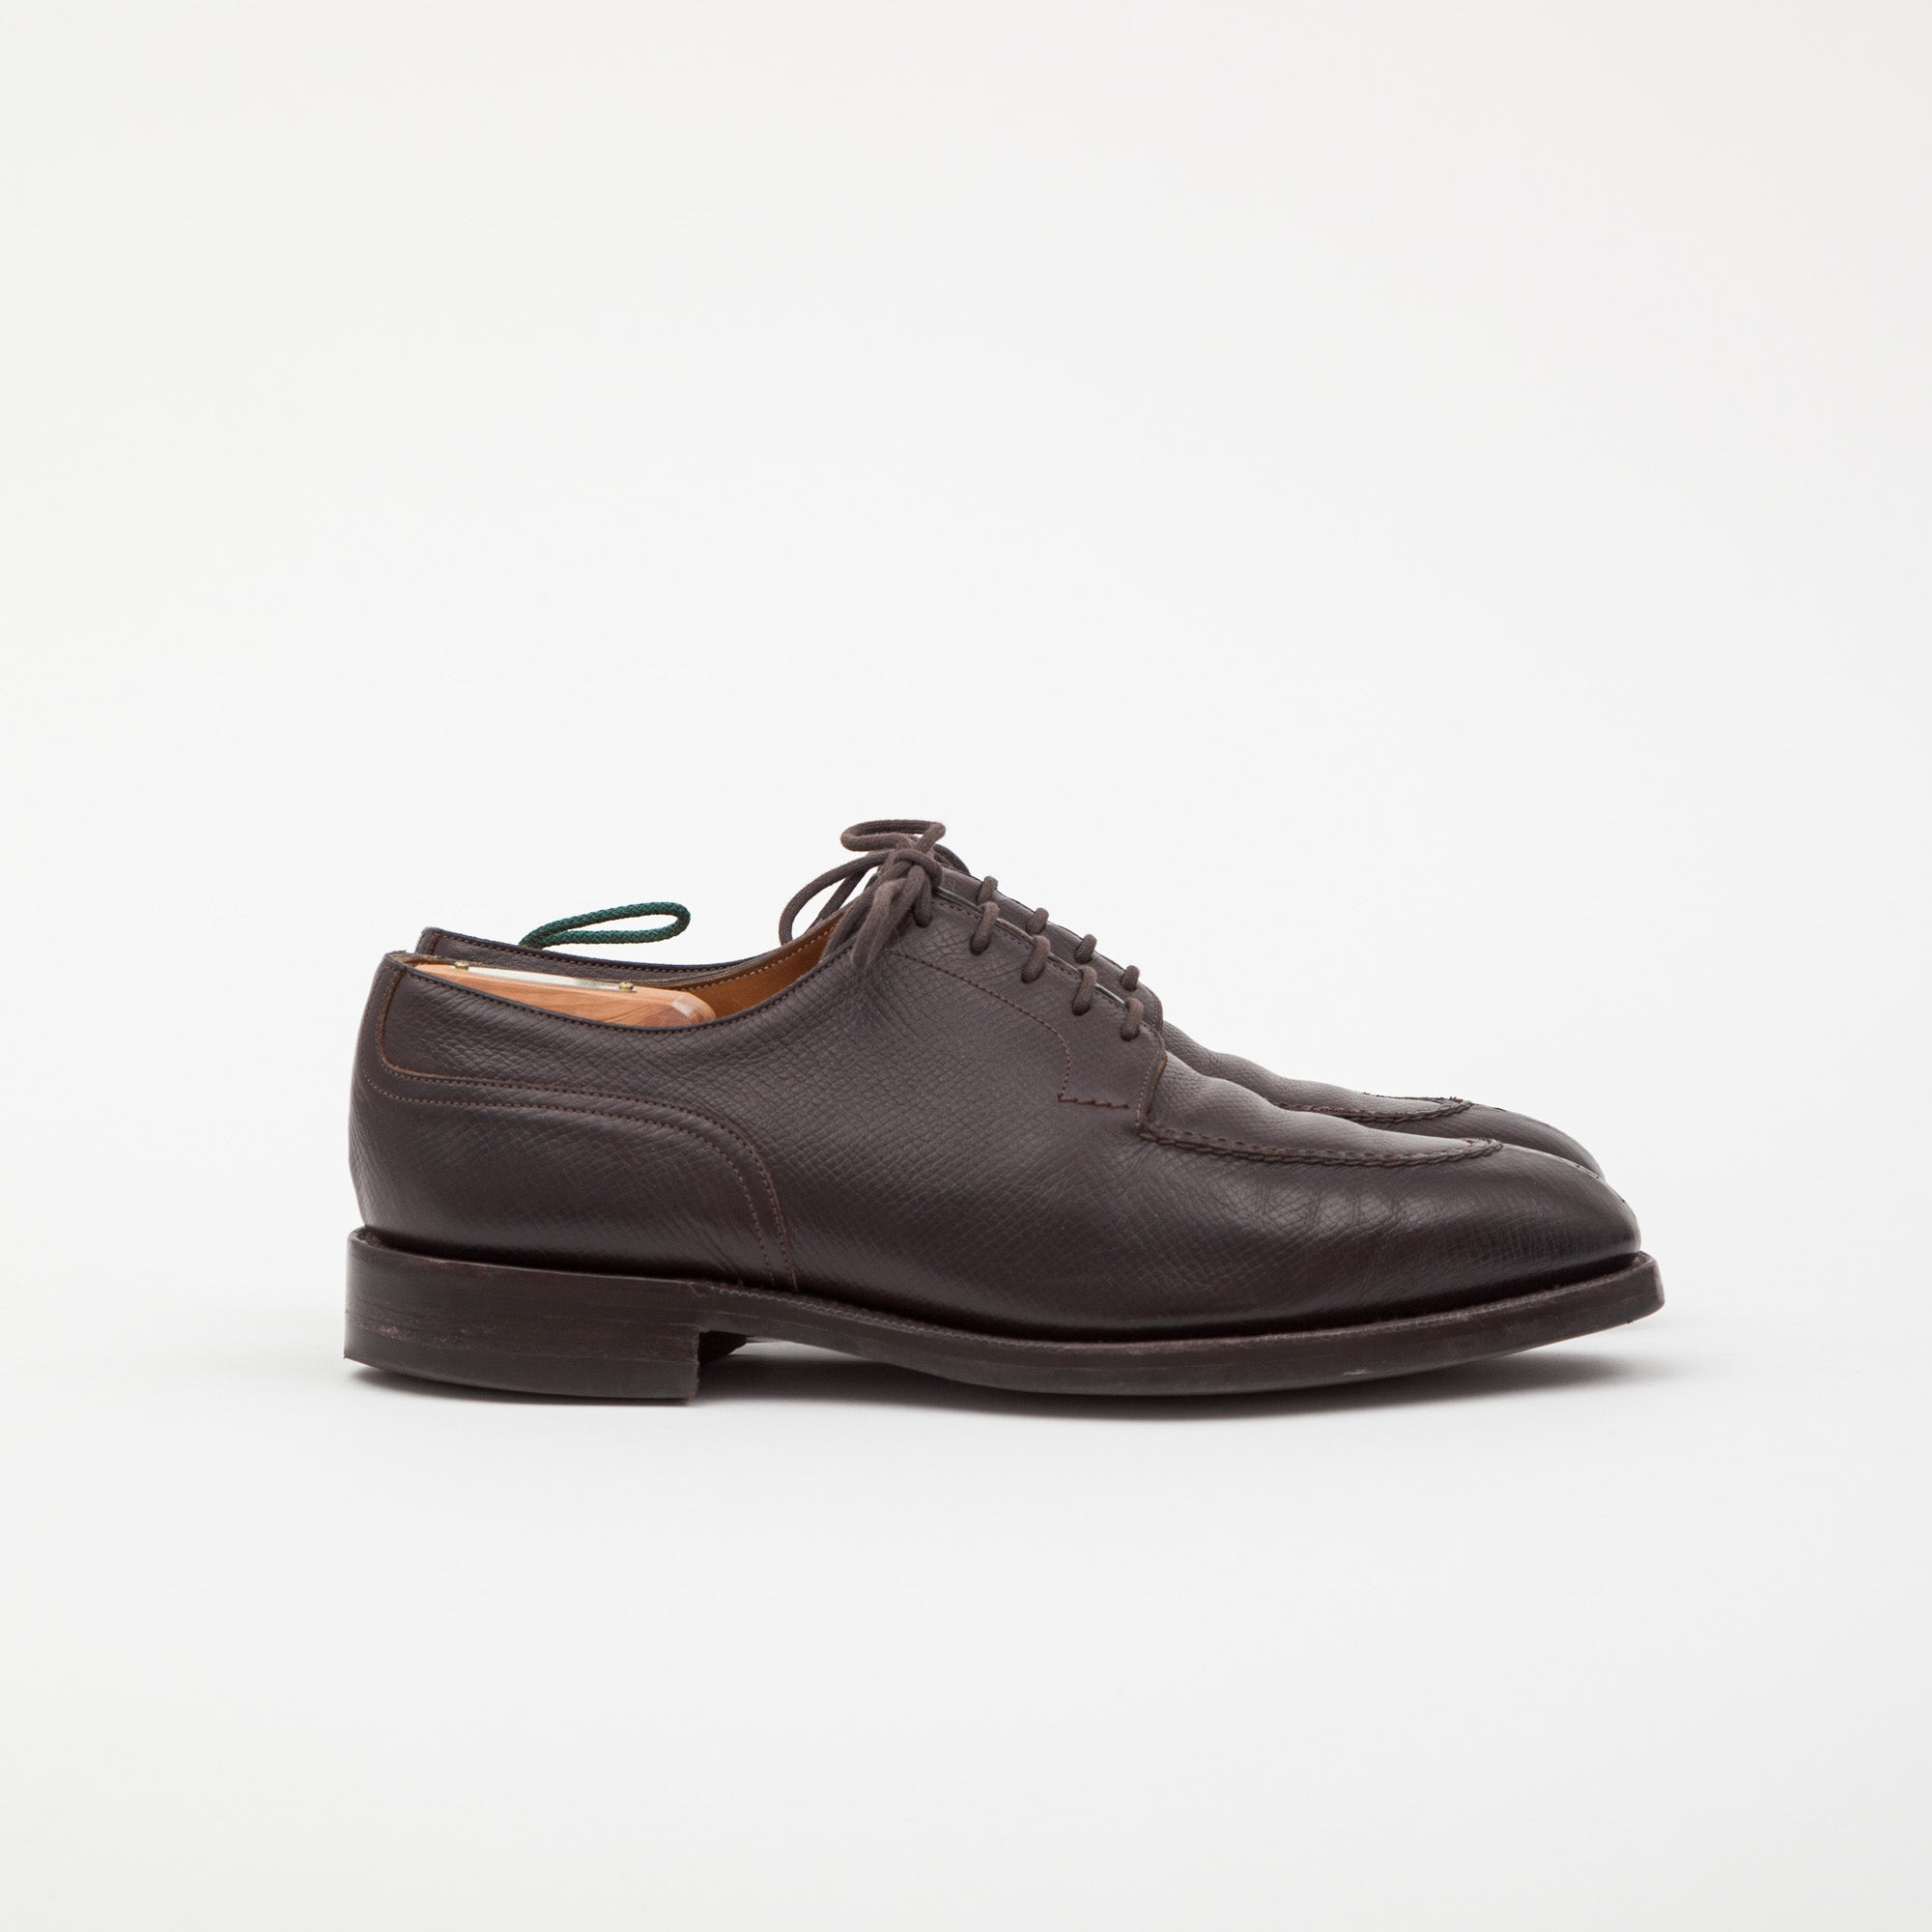 Edward Green Utah Leather Dover Shoe